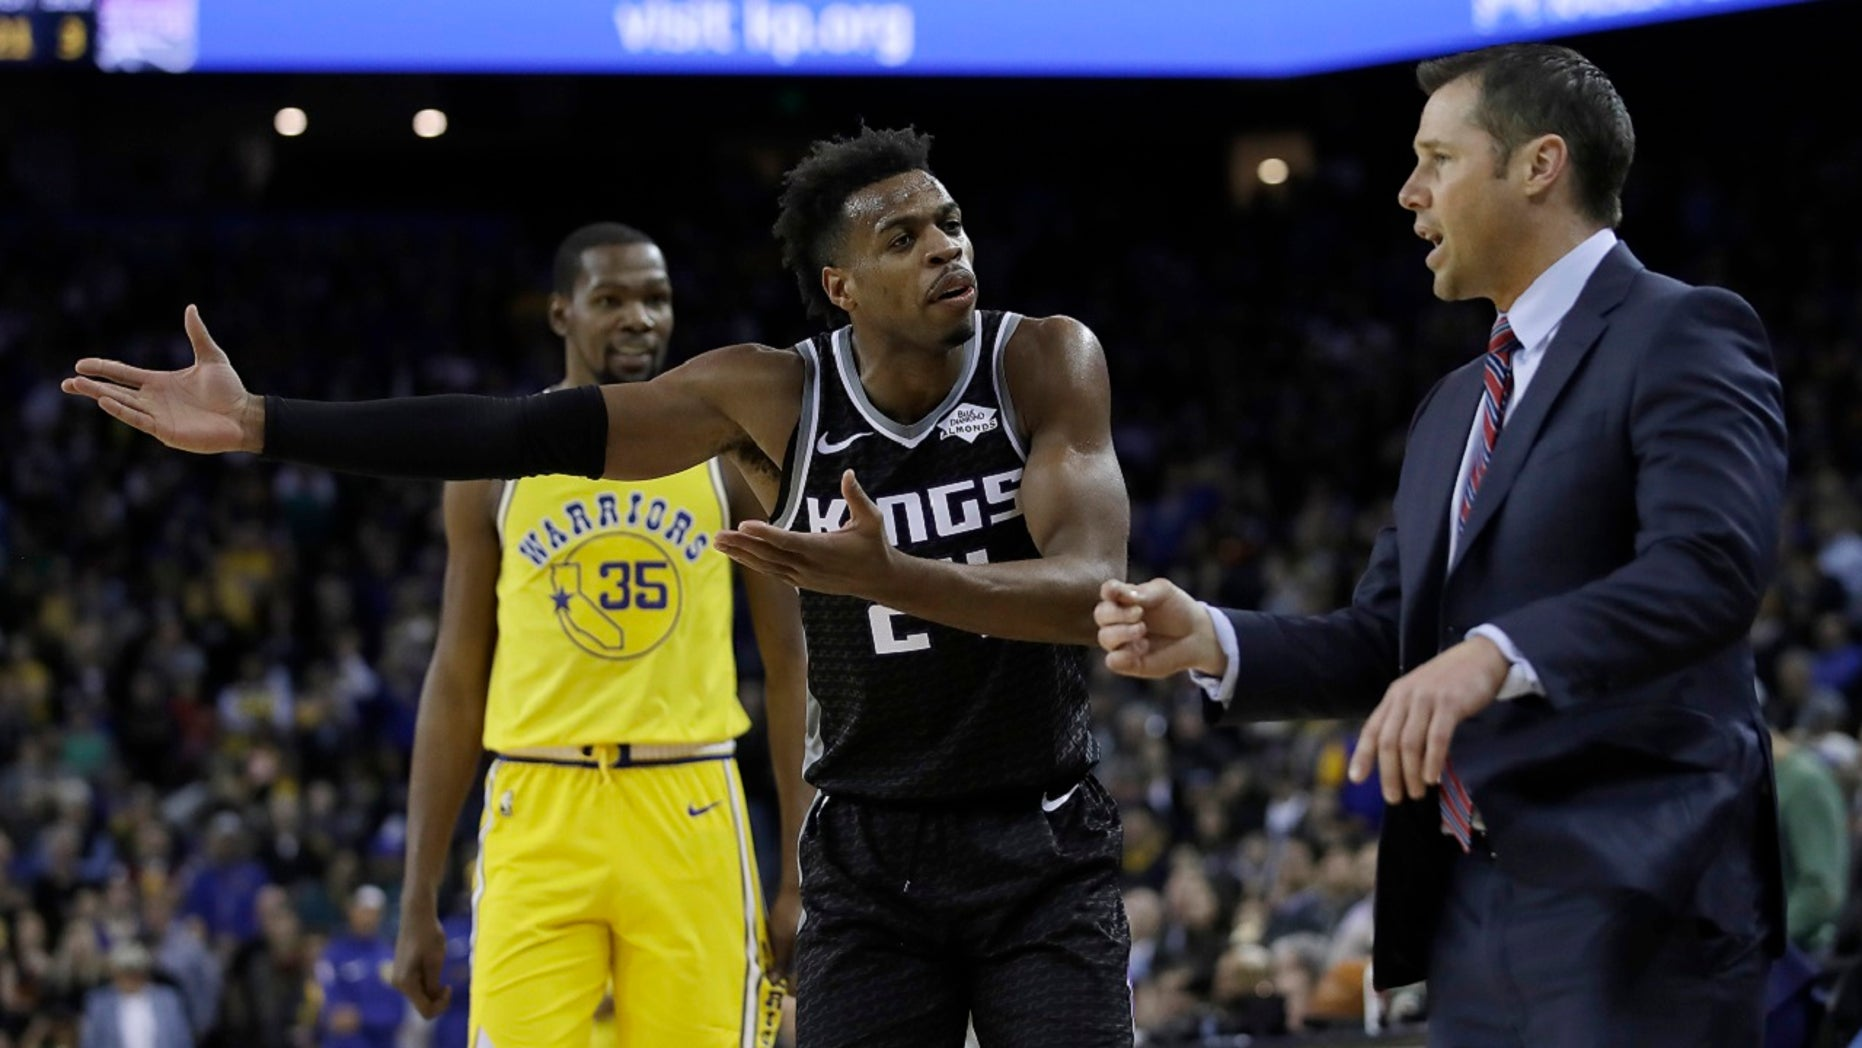 Sacramento Kings guard Buddy Hield, center, gestures to coach Dave Joerger, right, during the second half of the team's NBA basketball game against the Golden State Warriors on Thursday, Feb. 21, 2019, in Oakland, Calif.